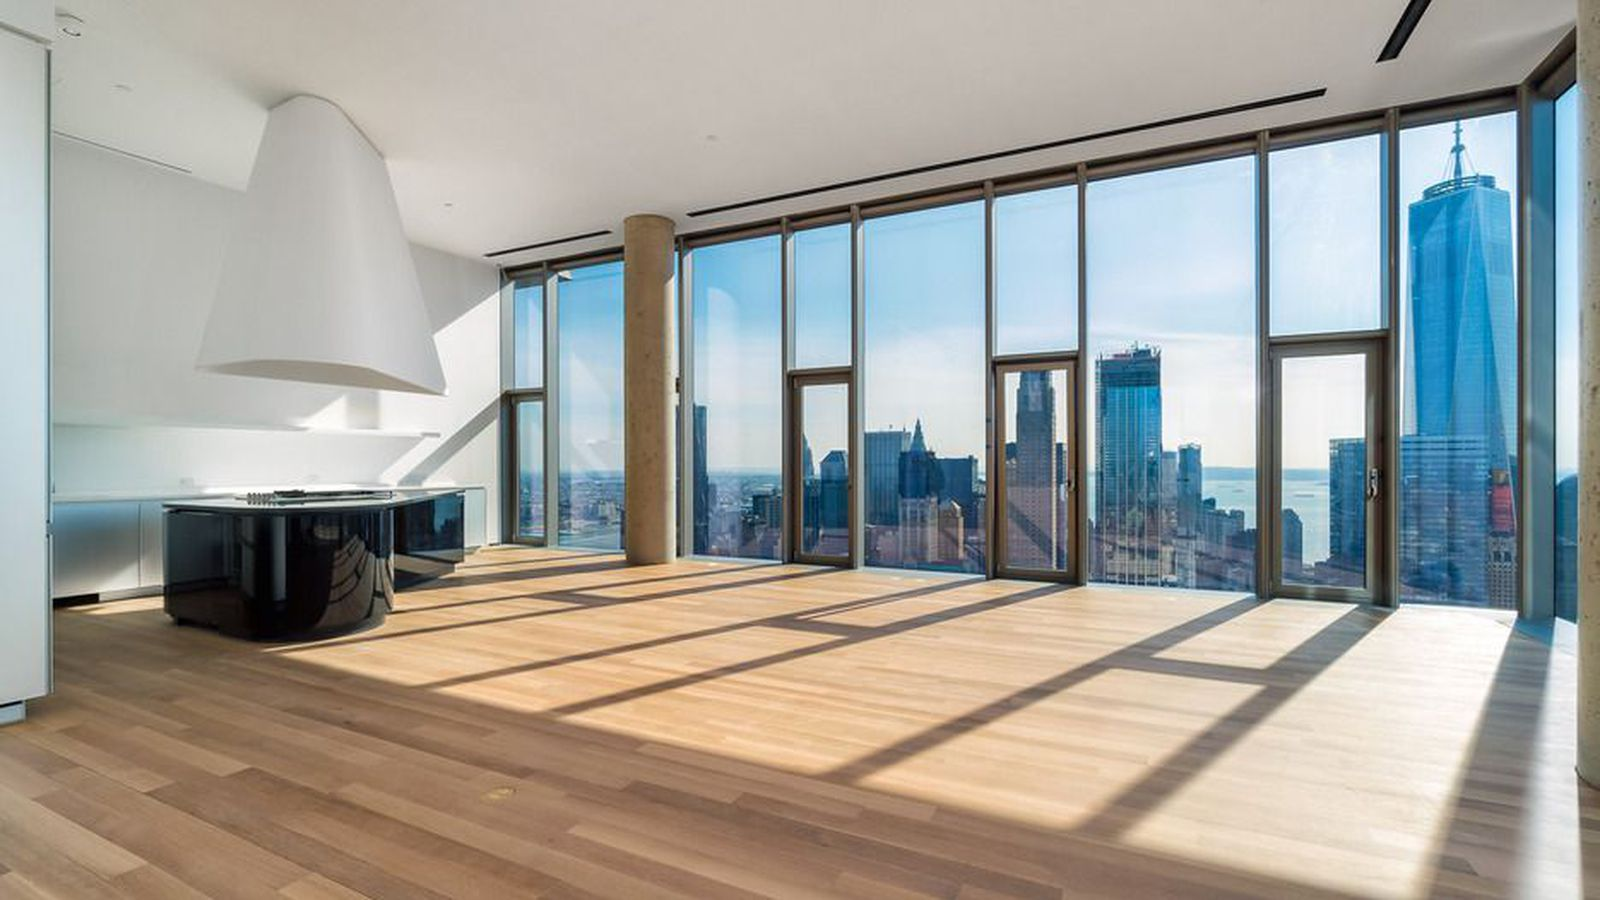 Pricey 56 leonard penthouse relisted a month after selling curbed ny Affordable interior design atlanta